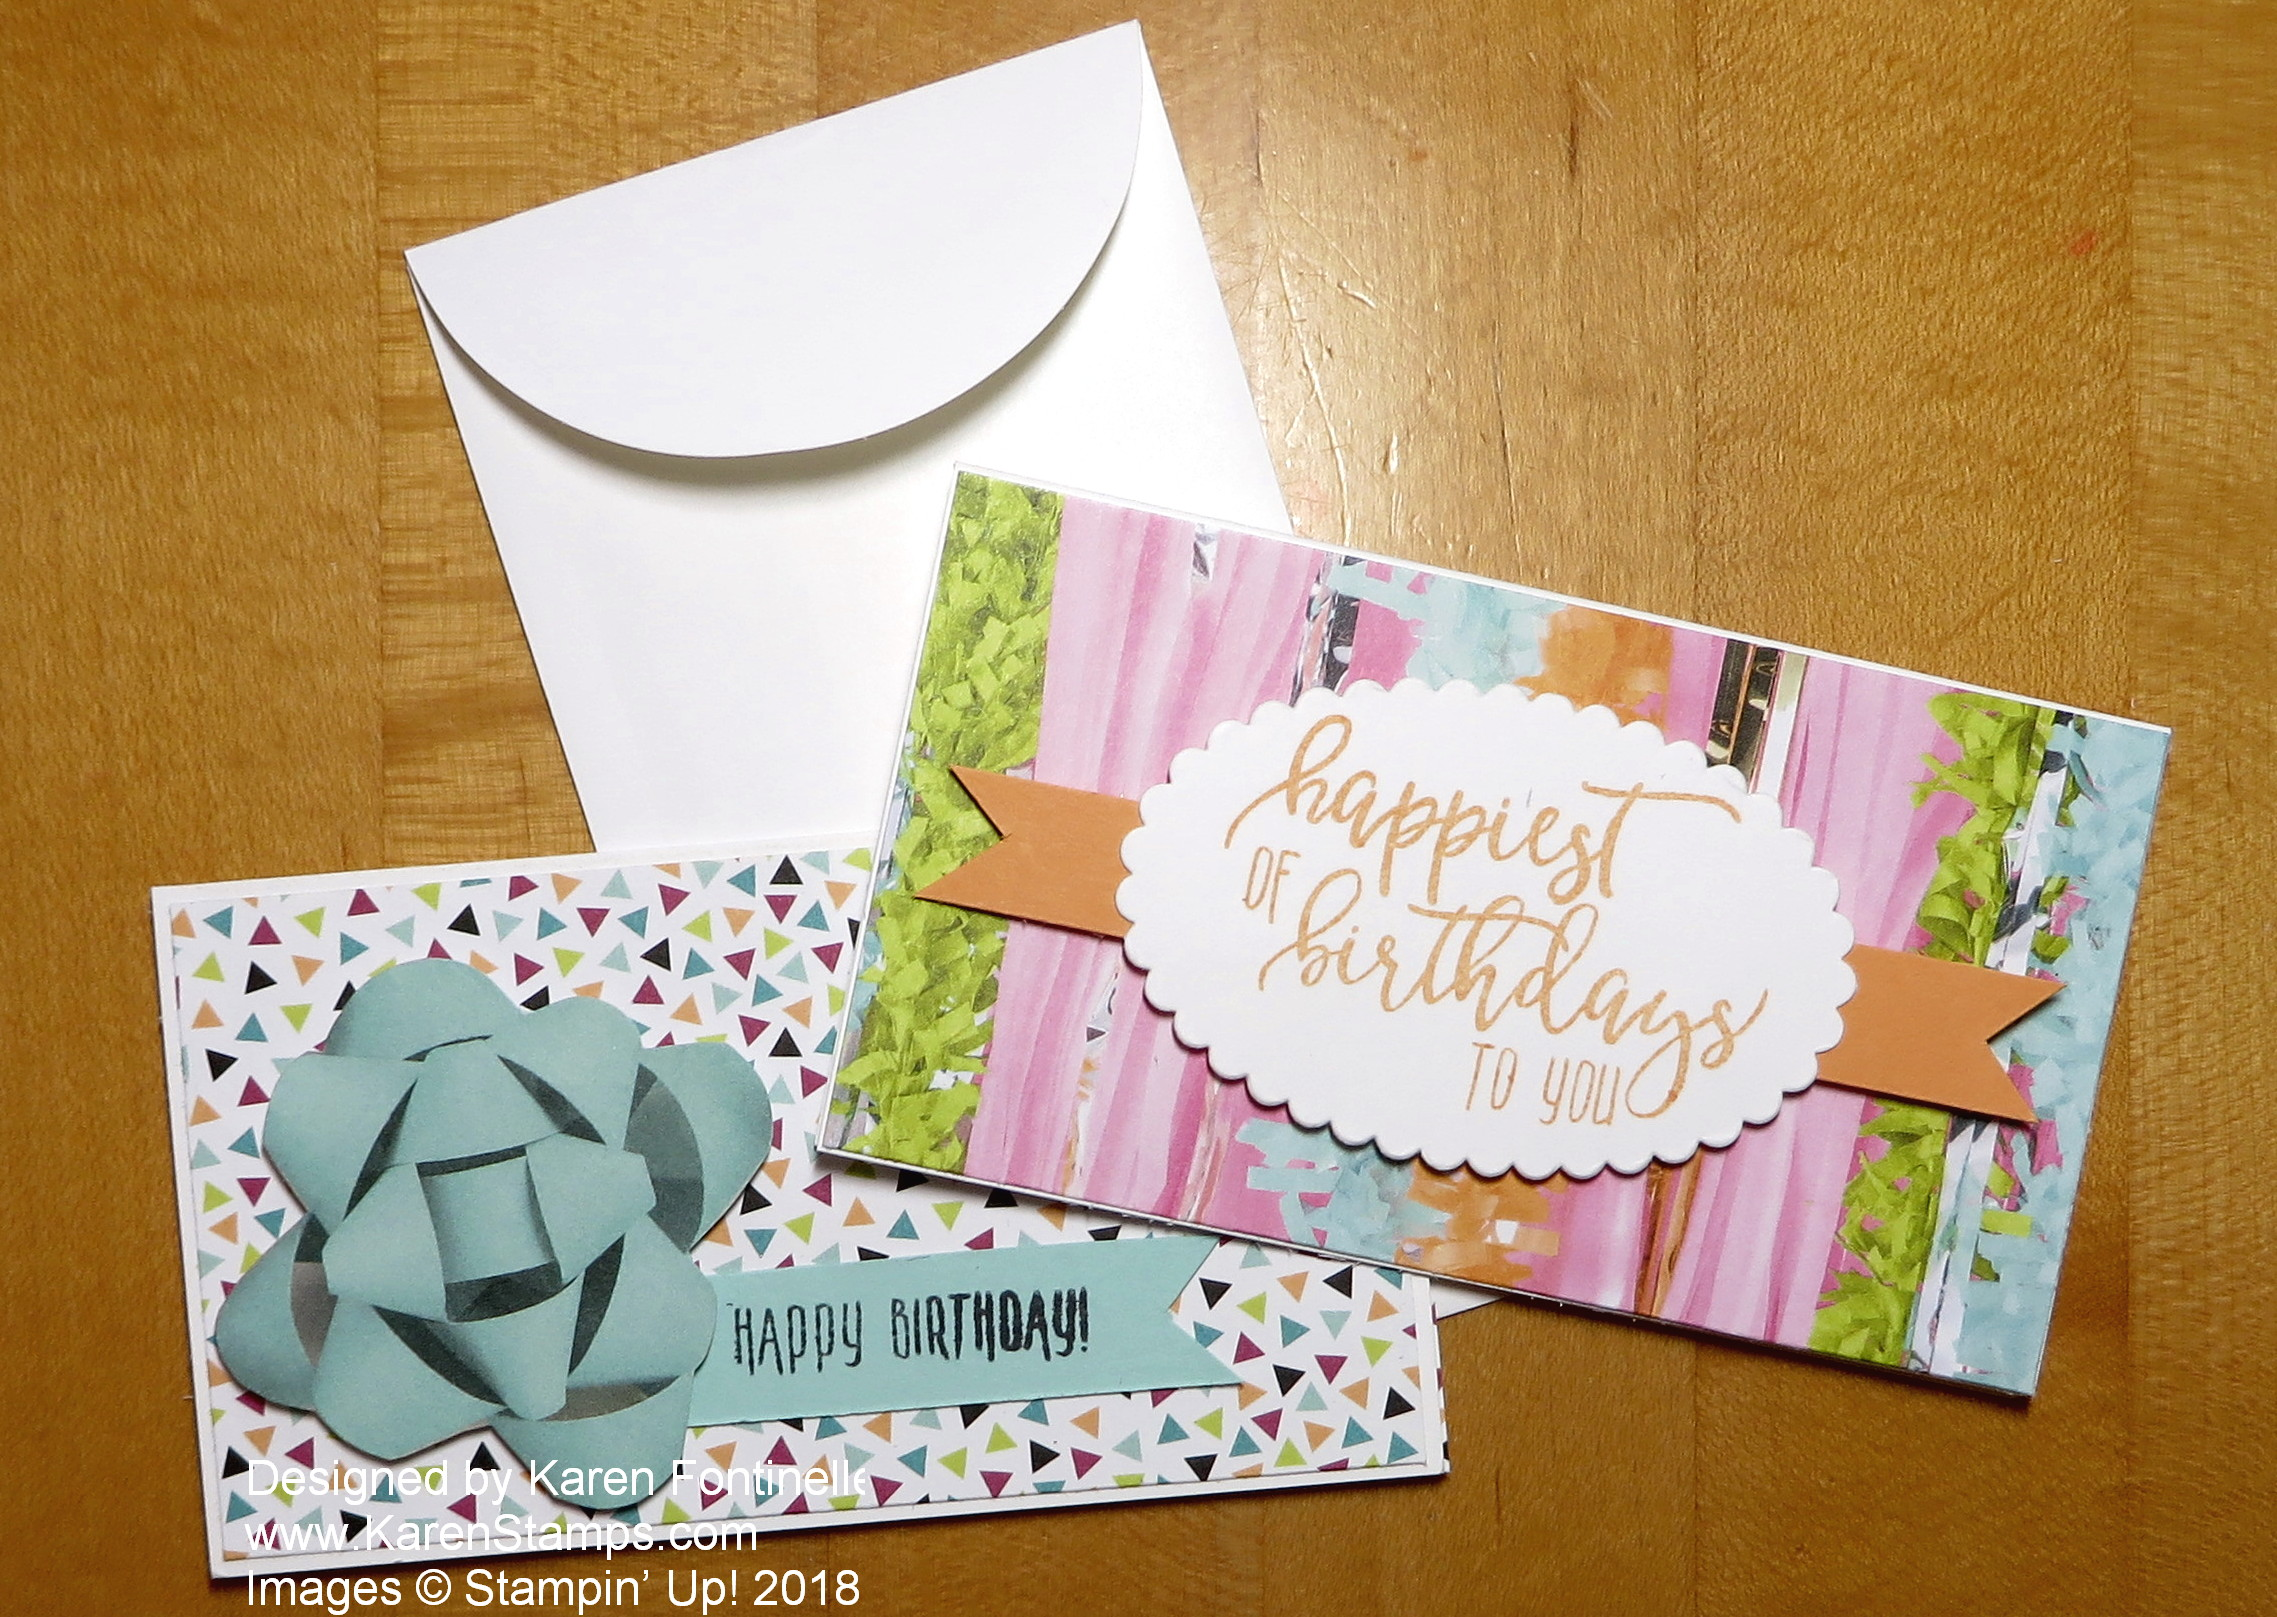 Stampin' Up! Narrow Note Cards For a Birthday